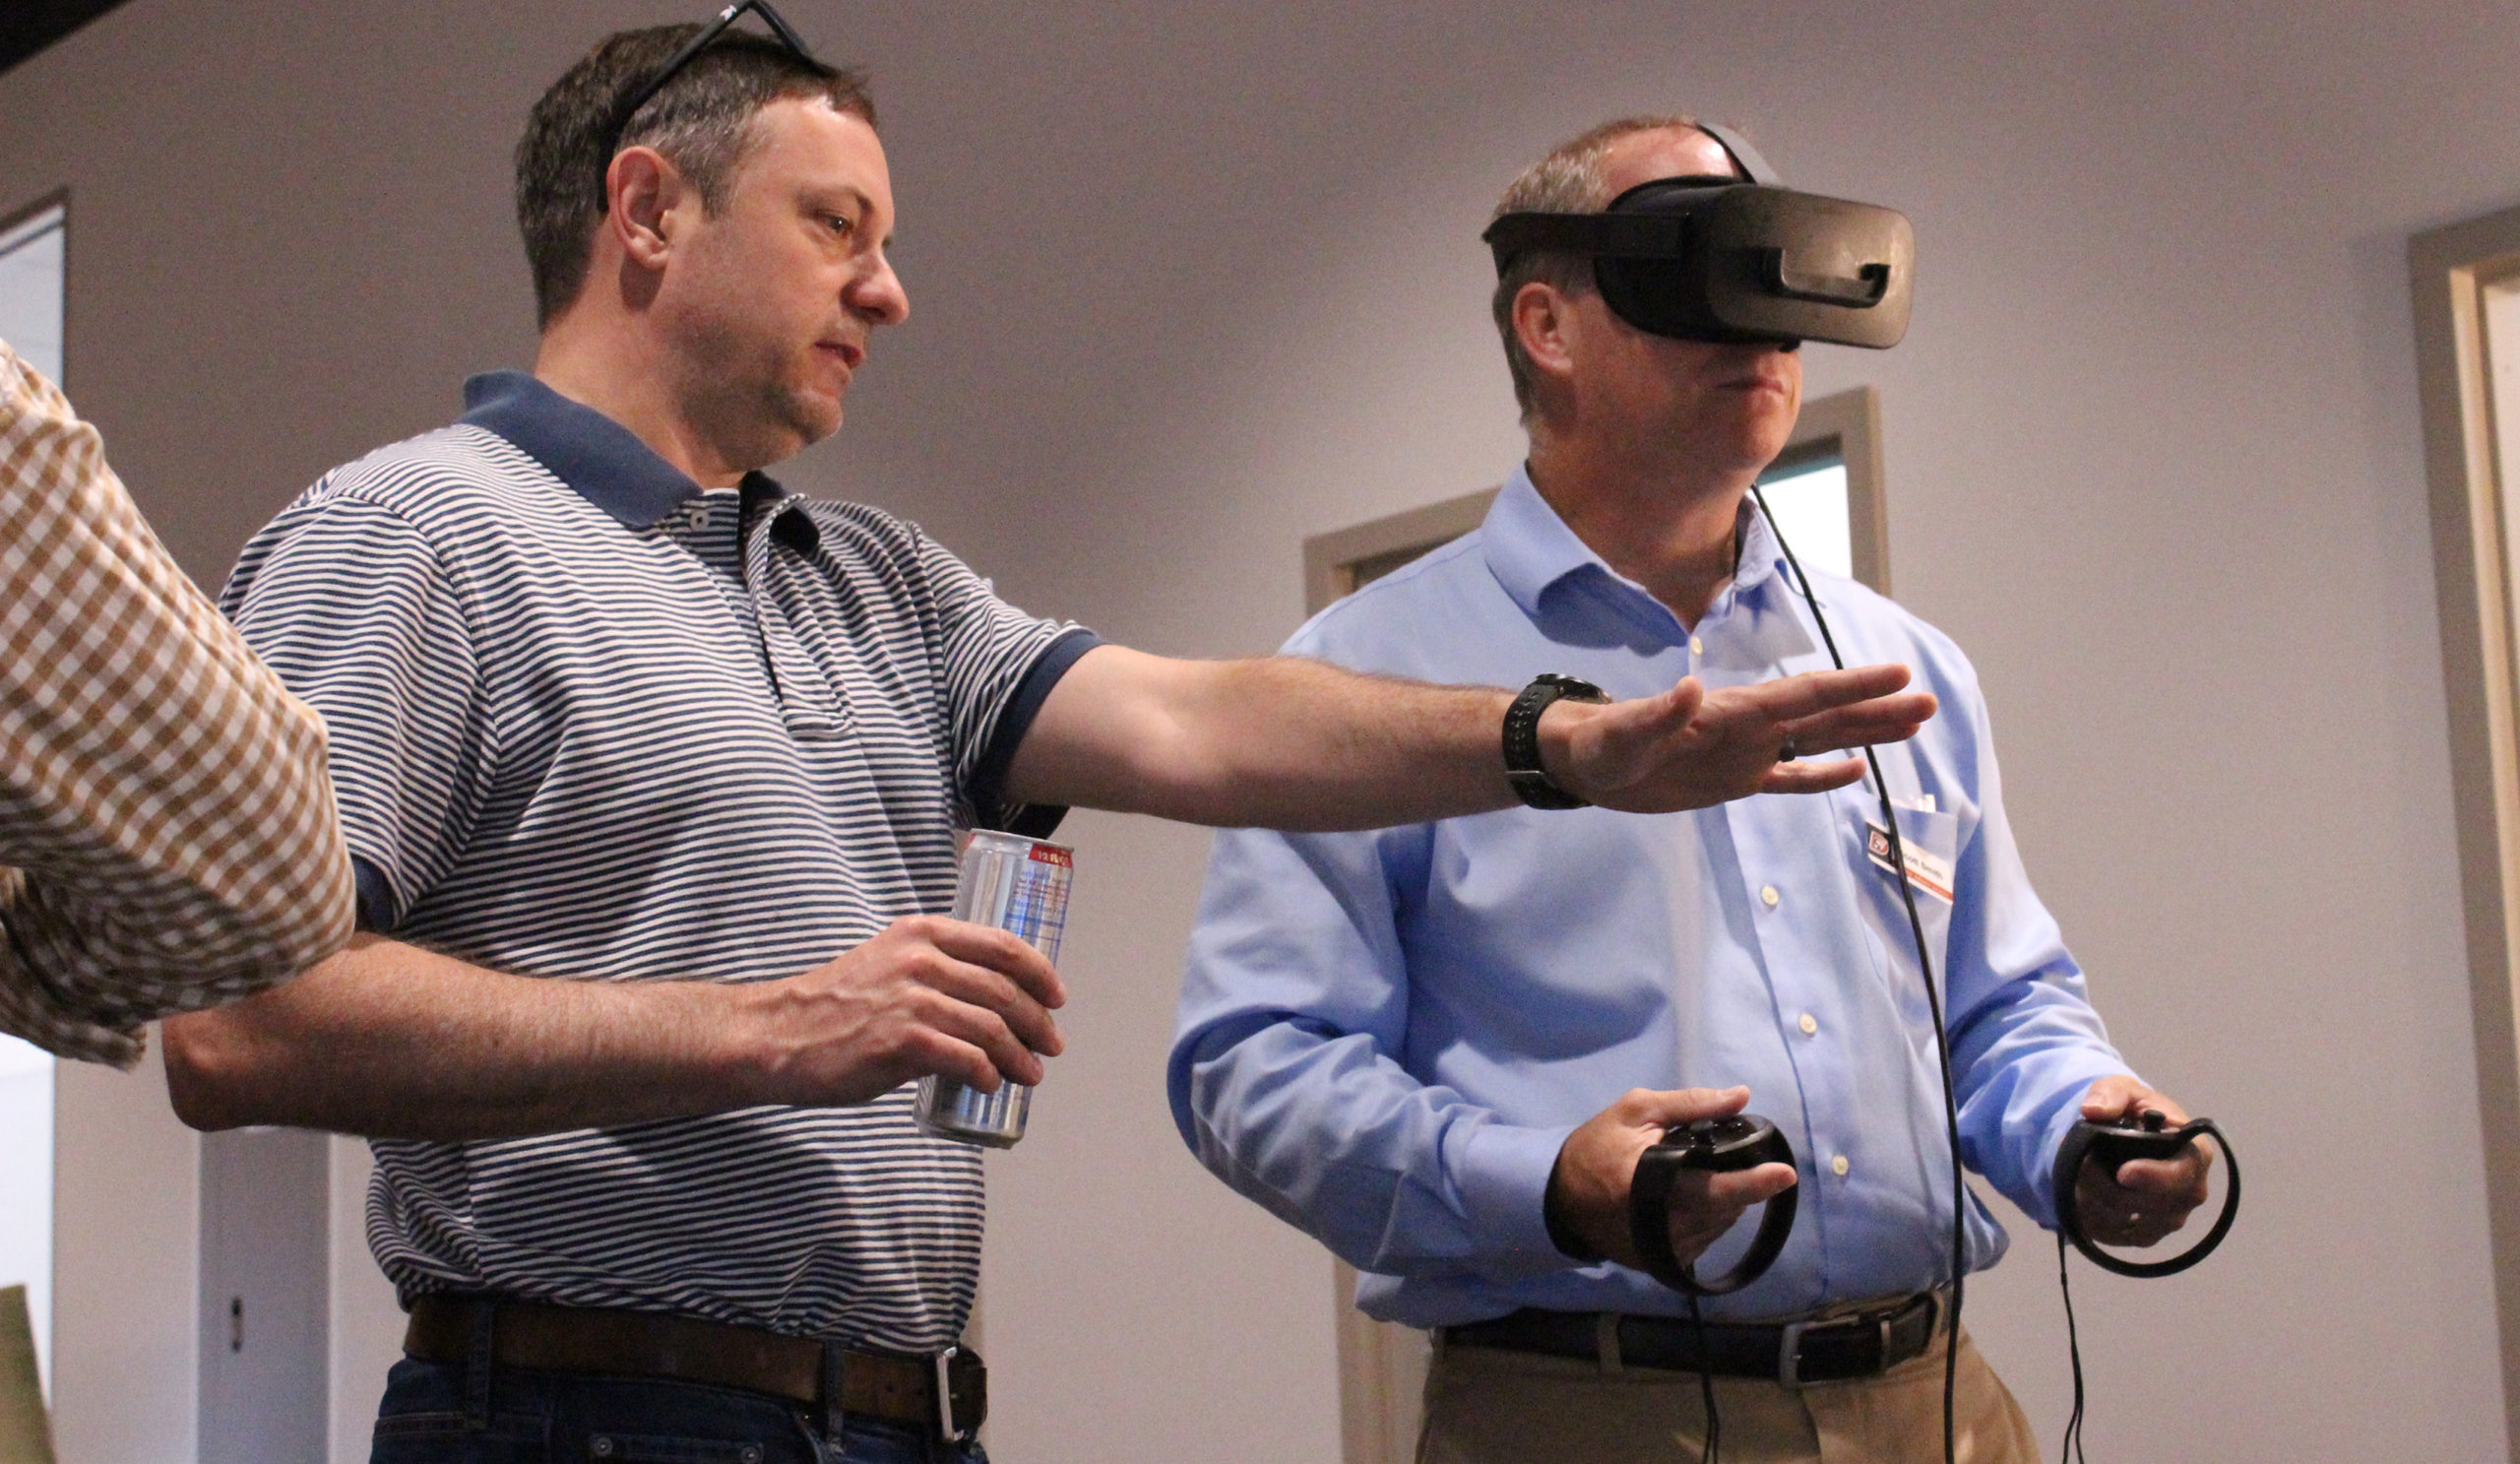 People using a VR Headset at the Doolittle Institute